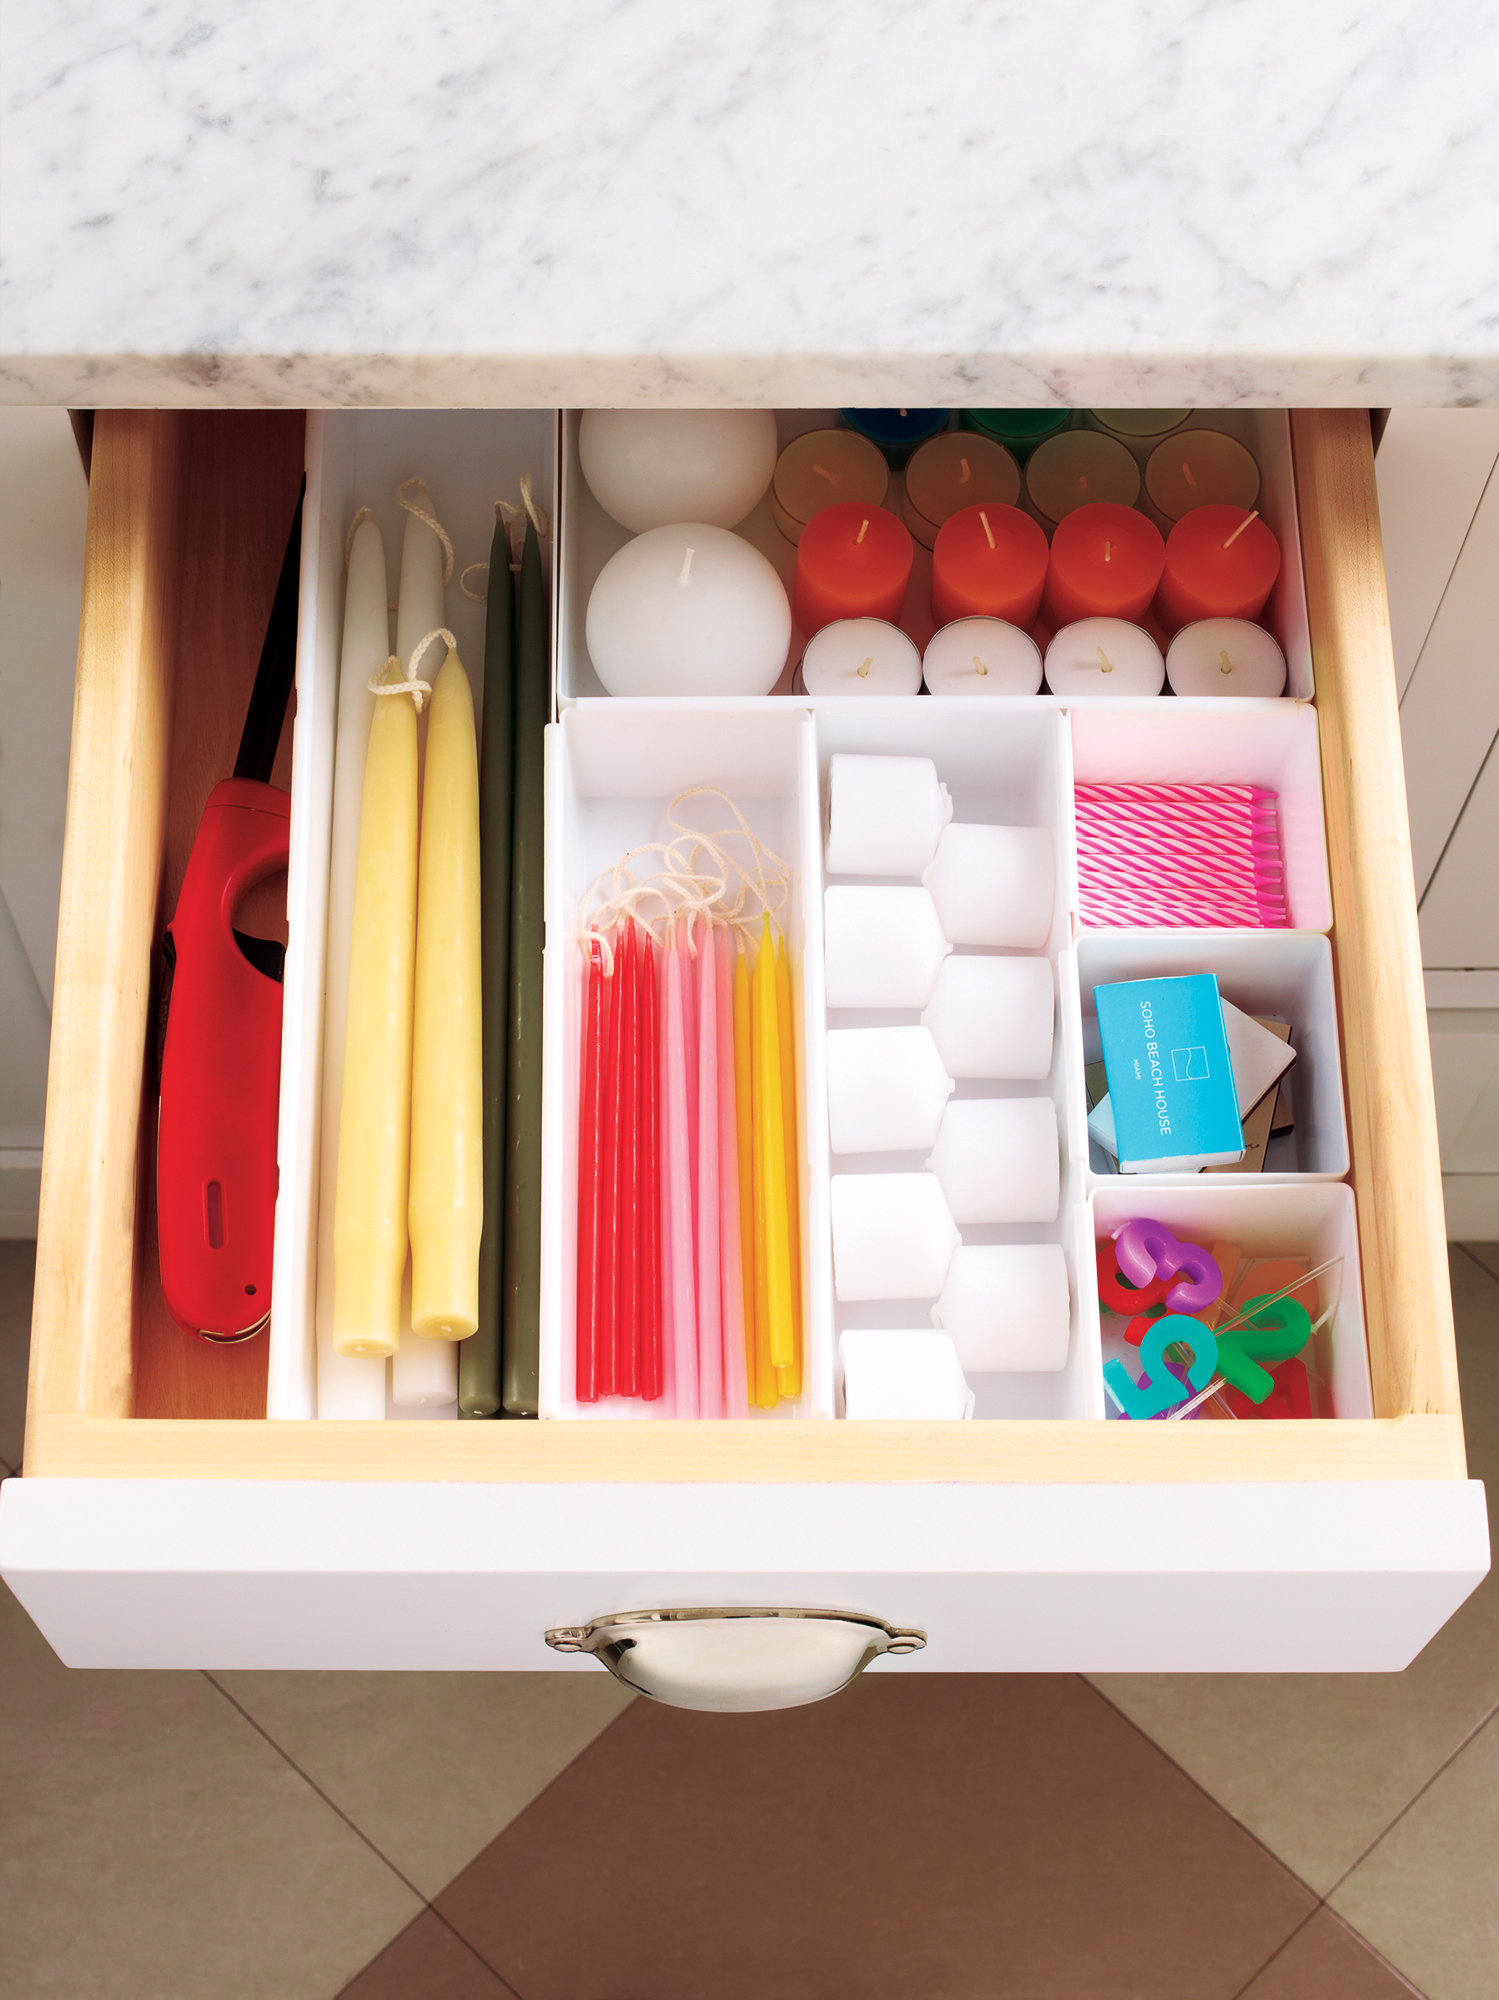 Candles, matches, and lighter organized in a drawer (NEW)